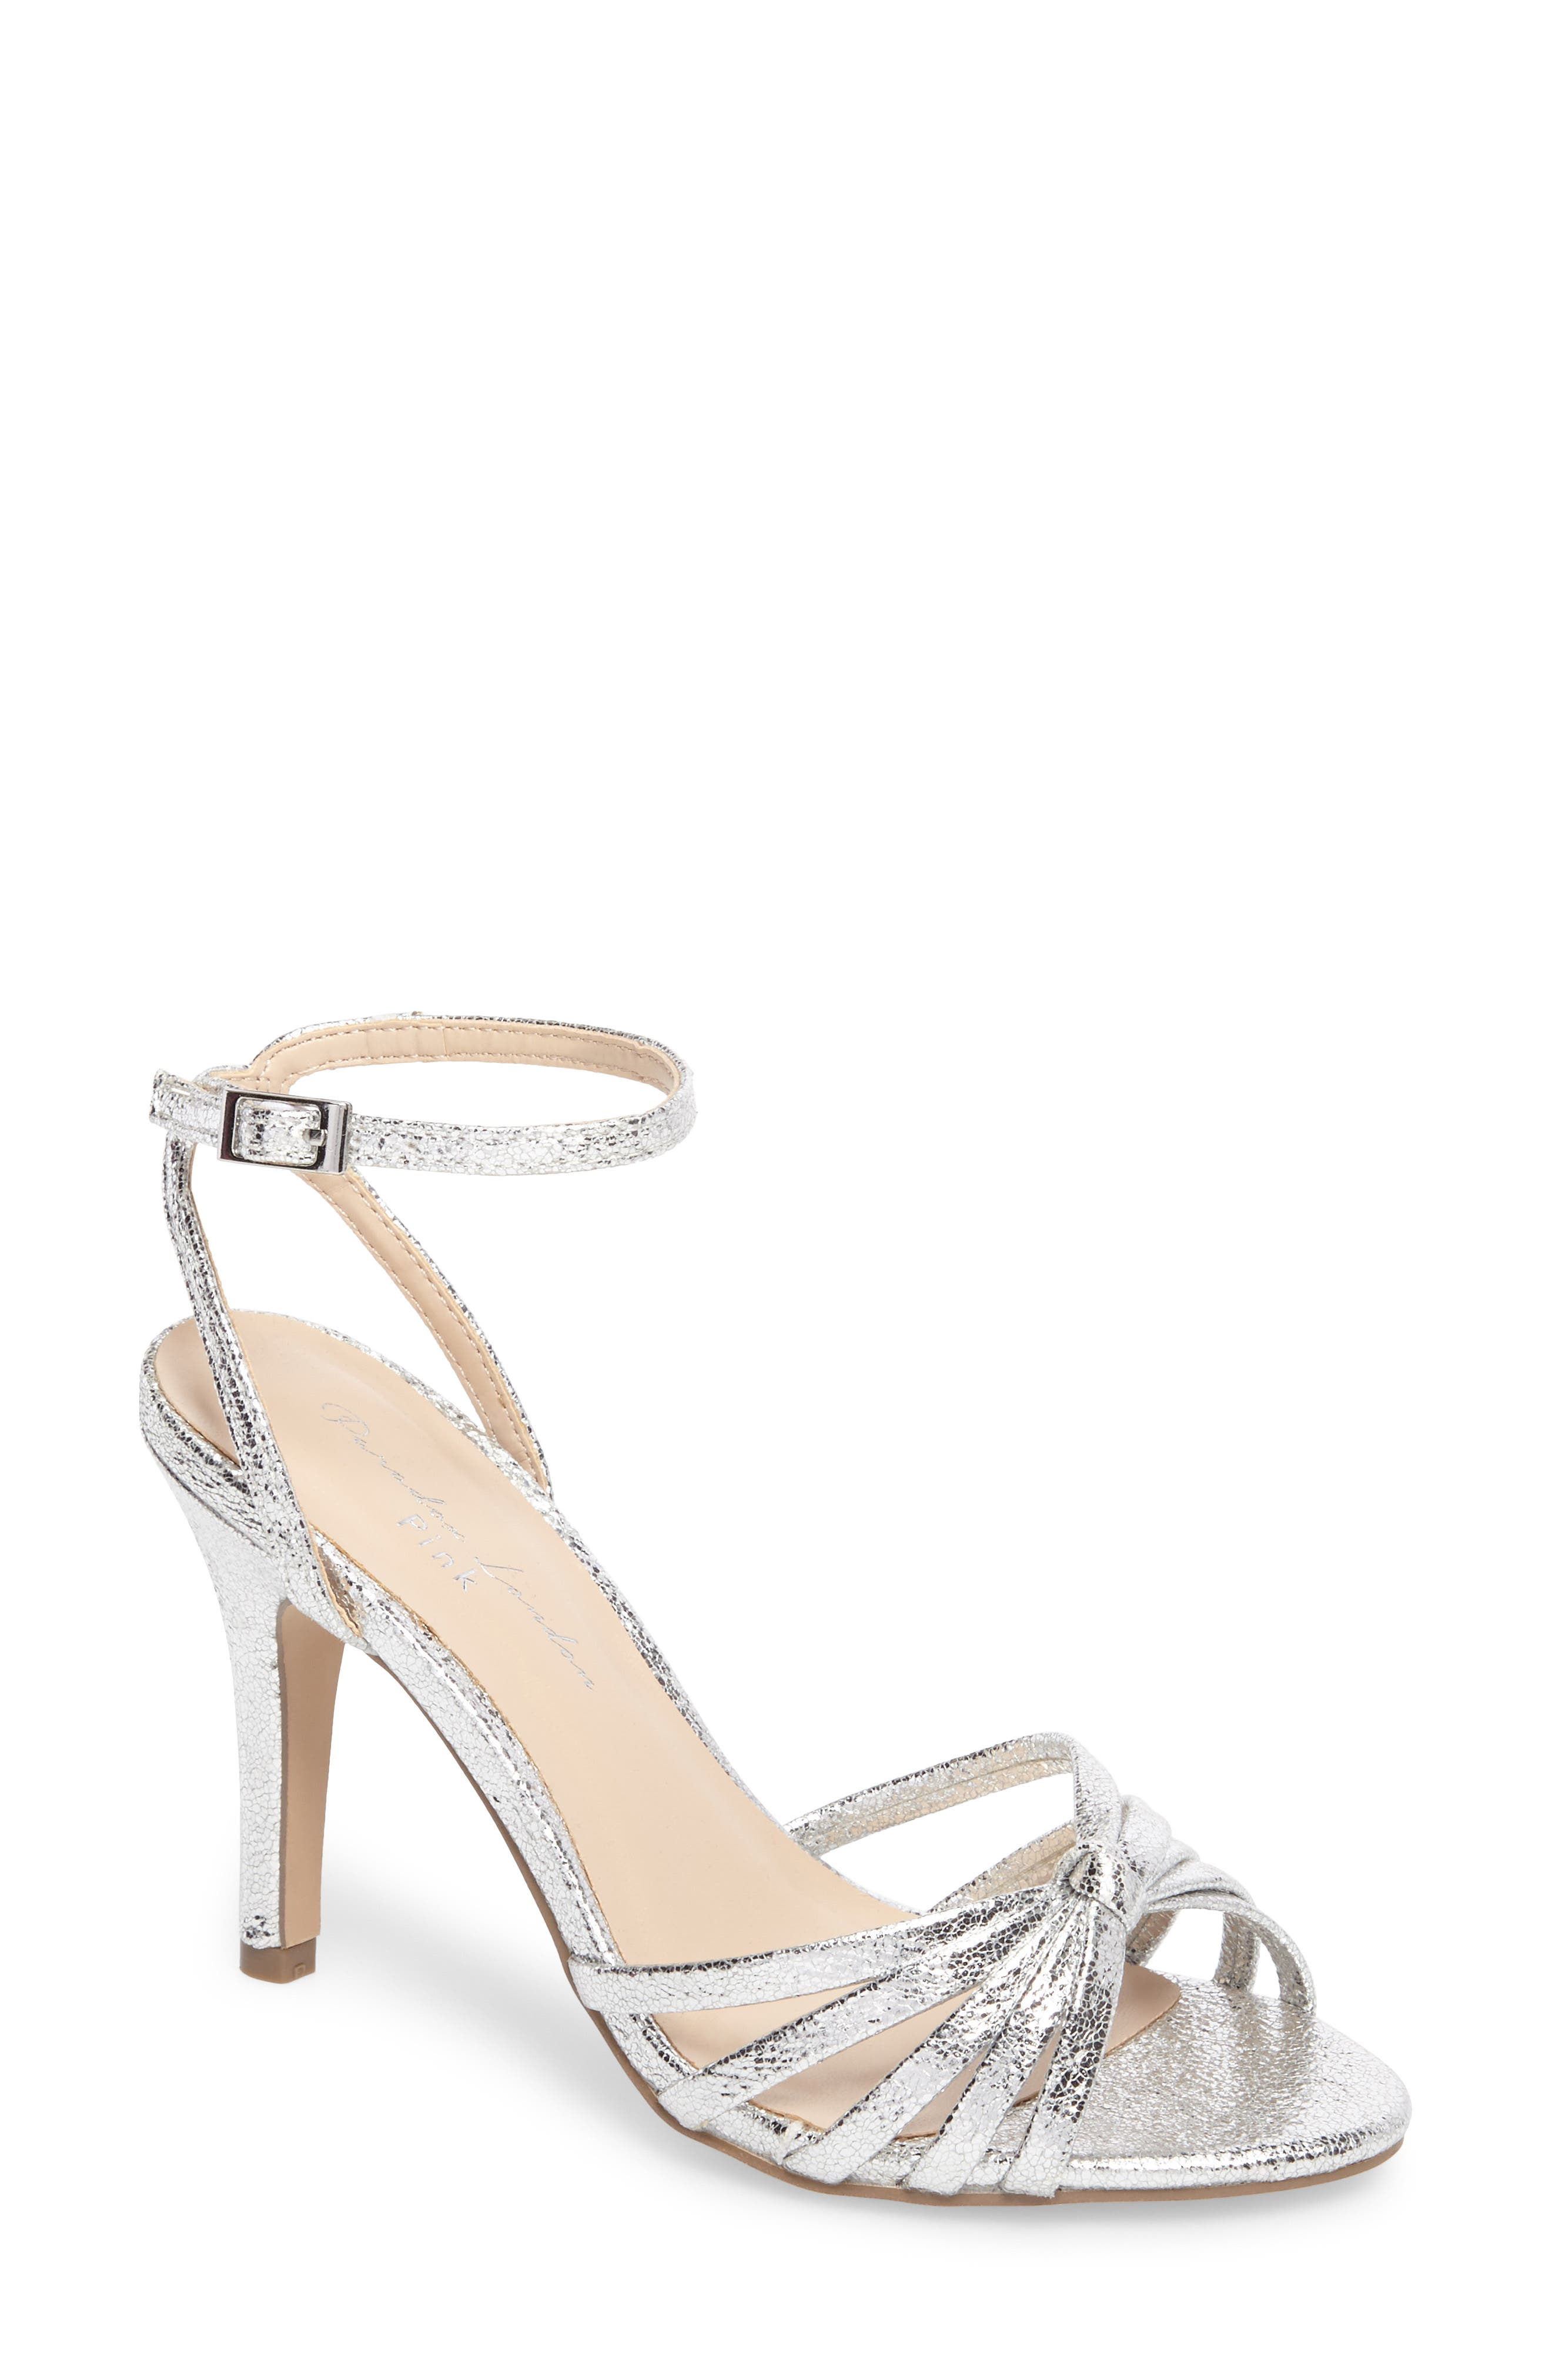 Mady Sandal,                         Main,                         color, Silver Glitter